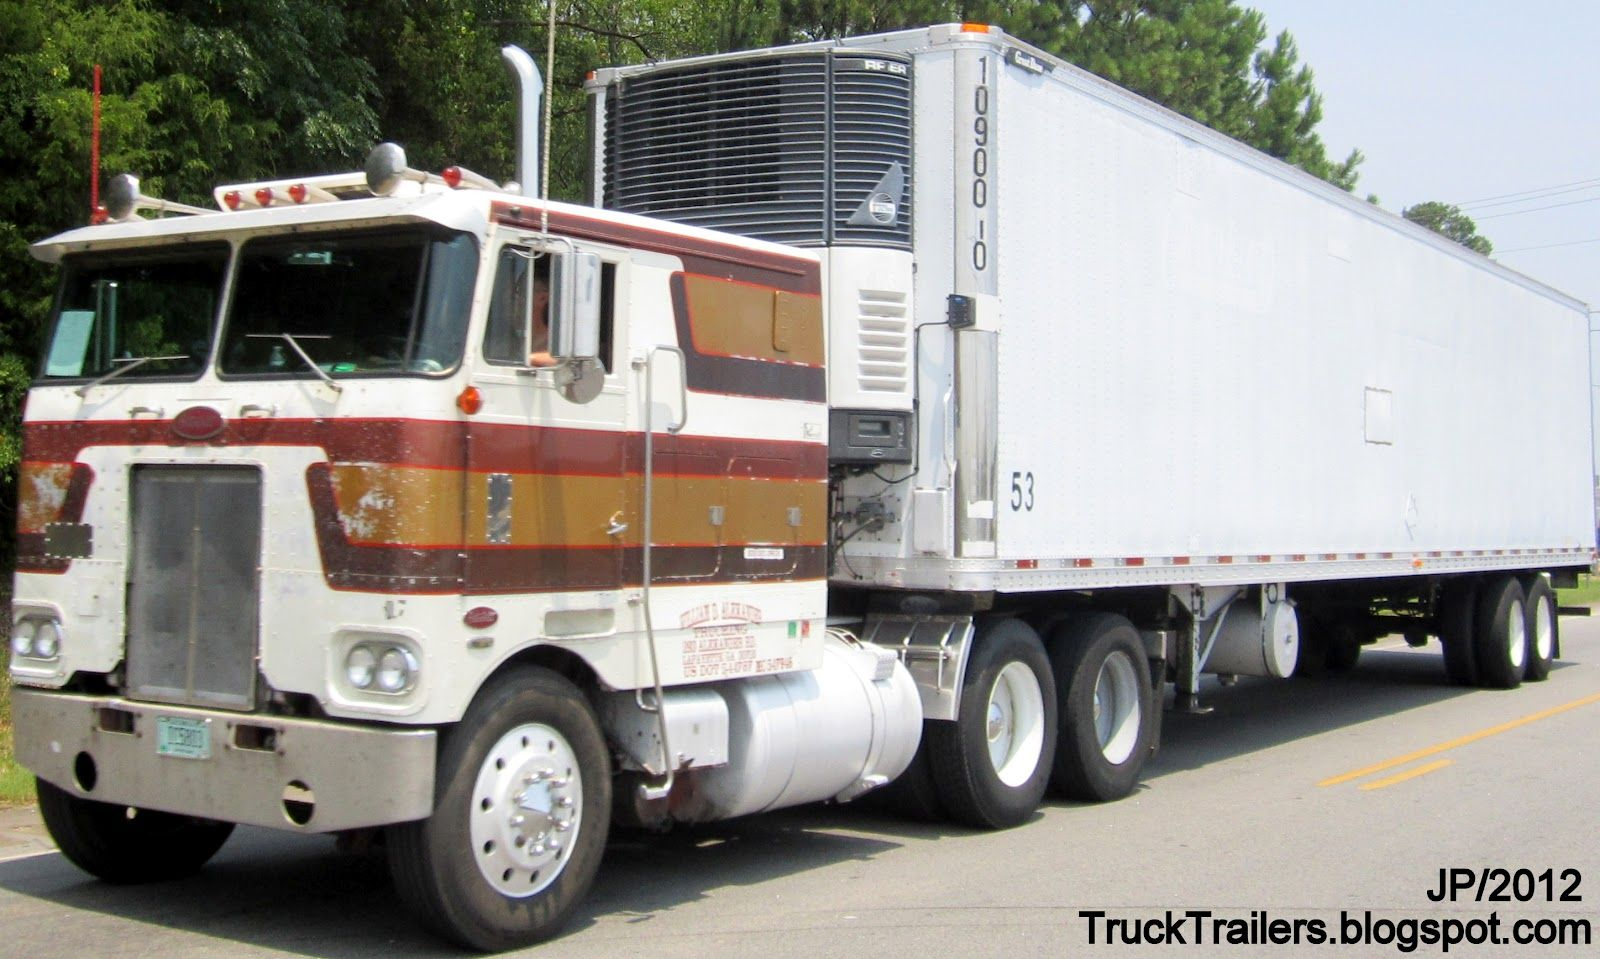 Old cab over semi truck 53 refrigerated great dane trailer